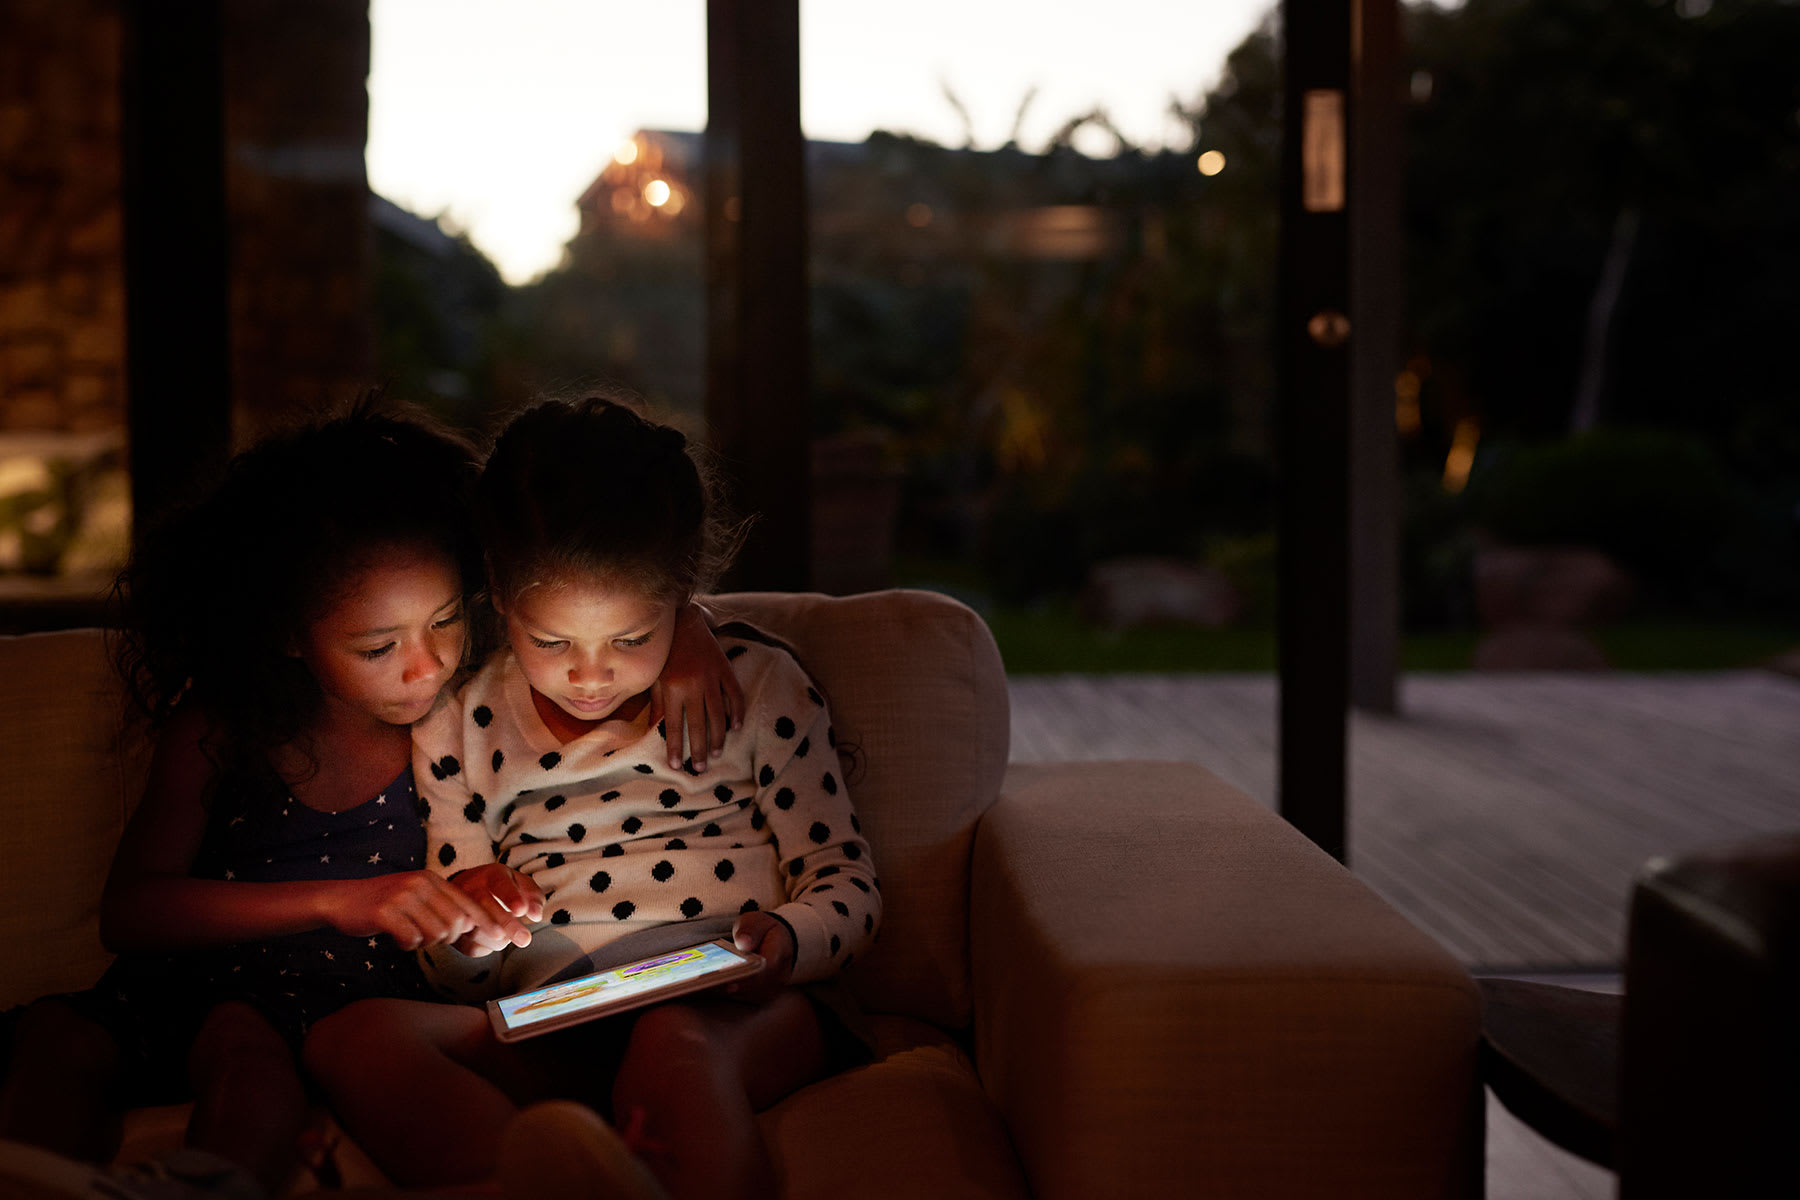 Two young girls using an electric tablet at home in a dark room.